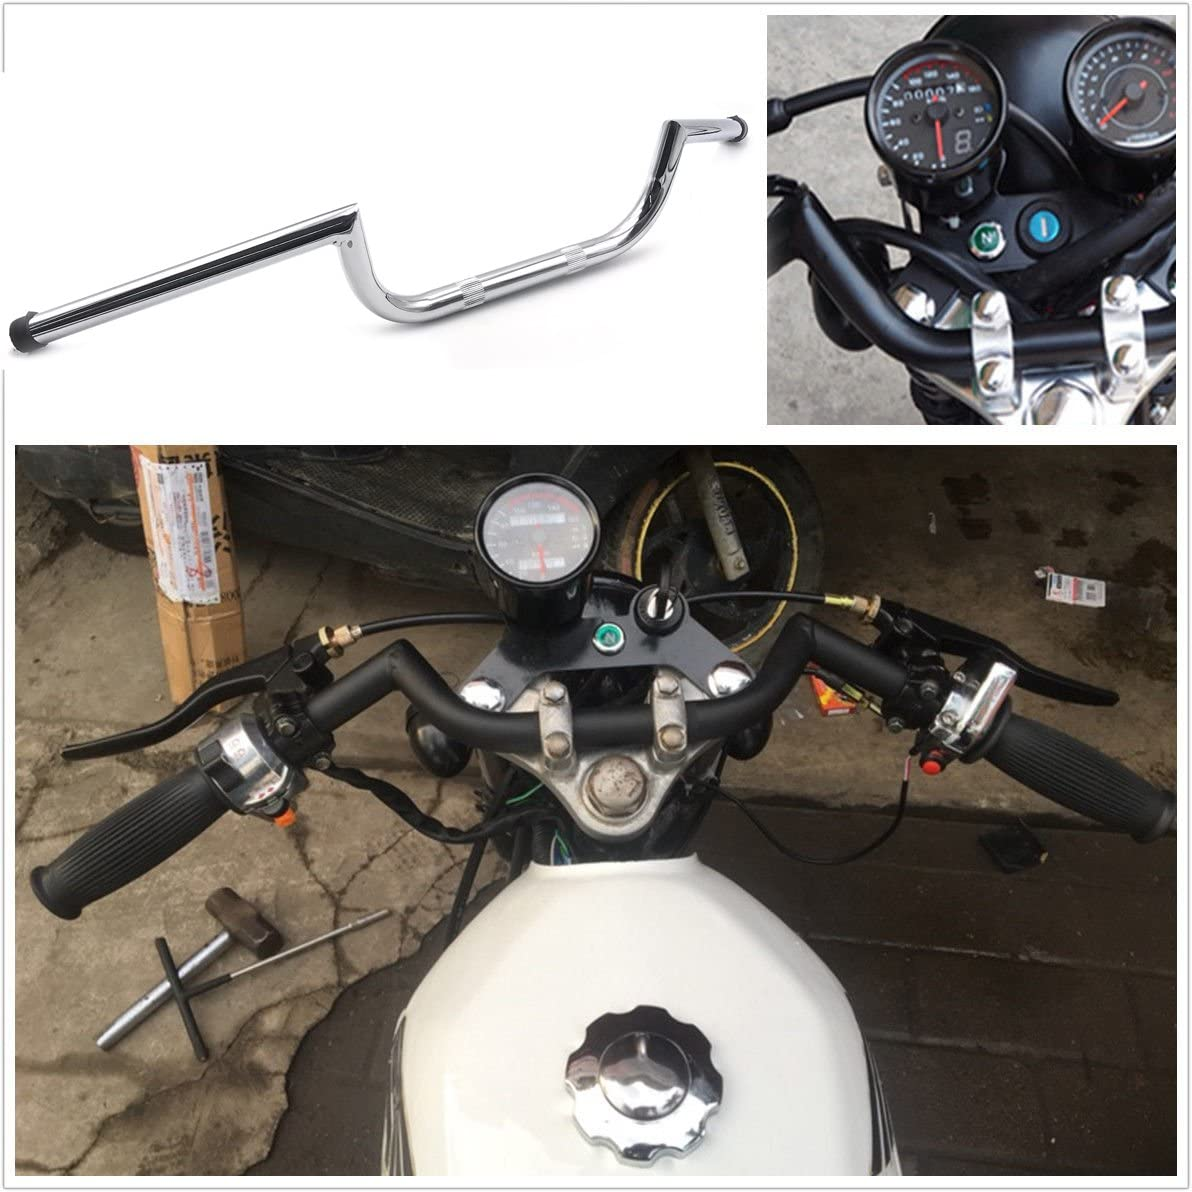 XKH B01M9913US Motorcycle 25mm 1 Black Dimpled Handlebar Compatible with 1982-2014 Harley Sportster XL 883 /& 1200 and Big Twin Models that accept 3 1//2 on center handlebars